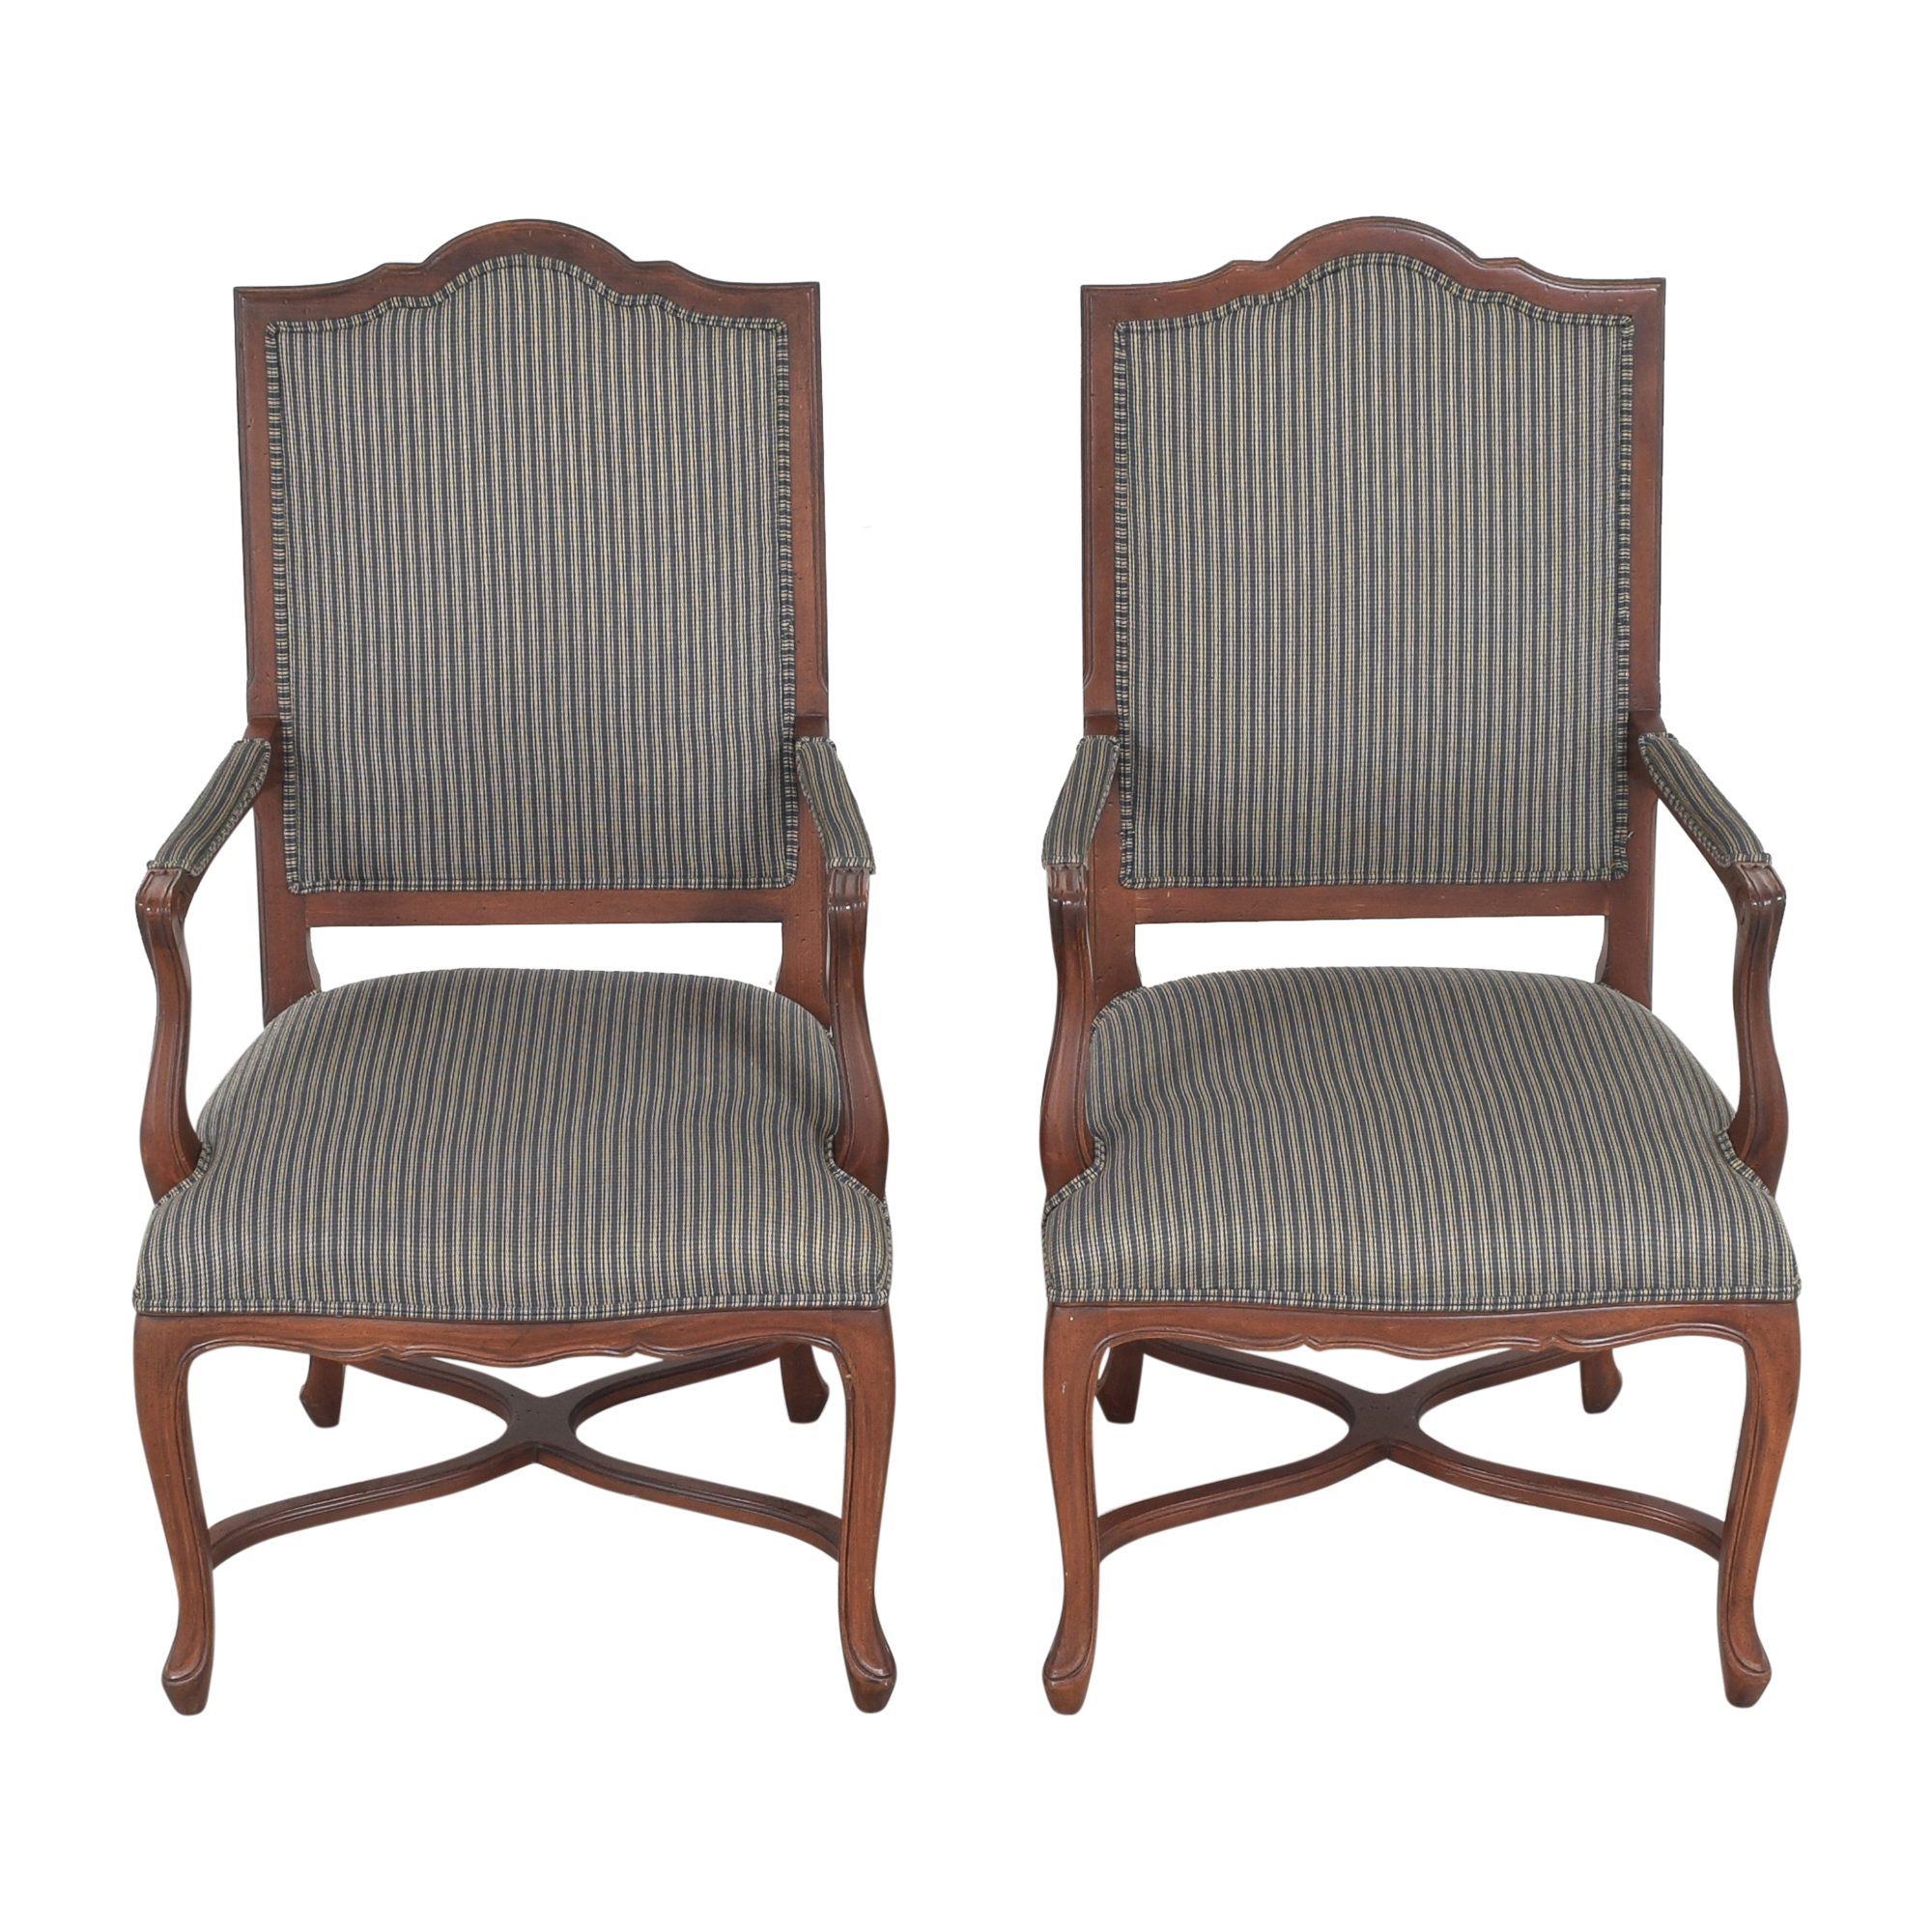 Ethan Allen Ethan Allen Dining Arm Chairs ct